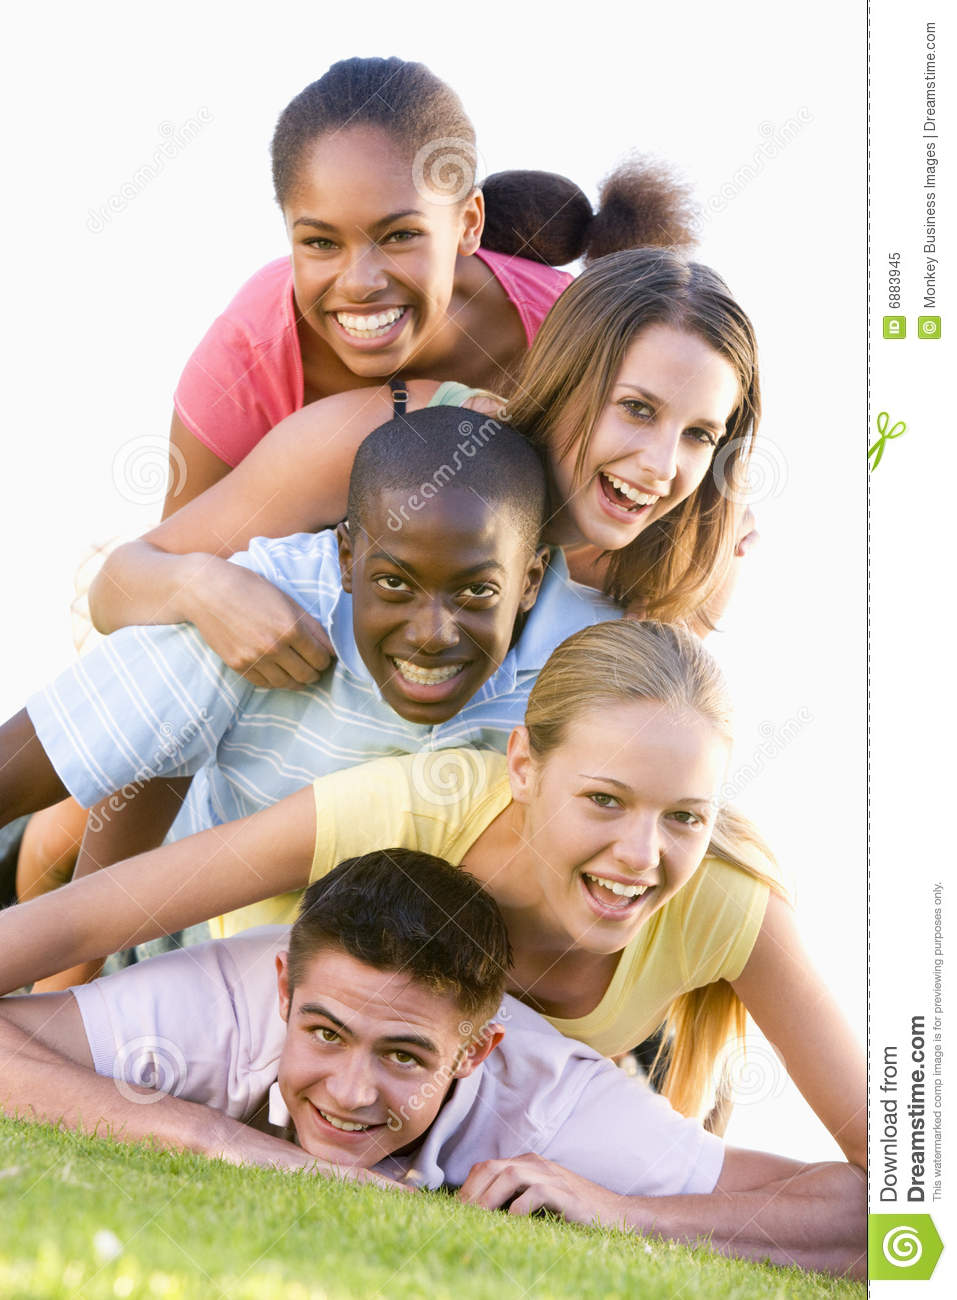 Group Of Teenagers Having Fun Outdoors Stock Image